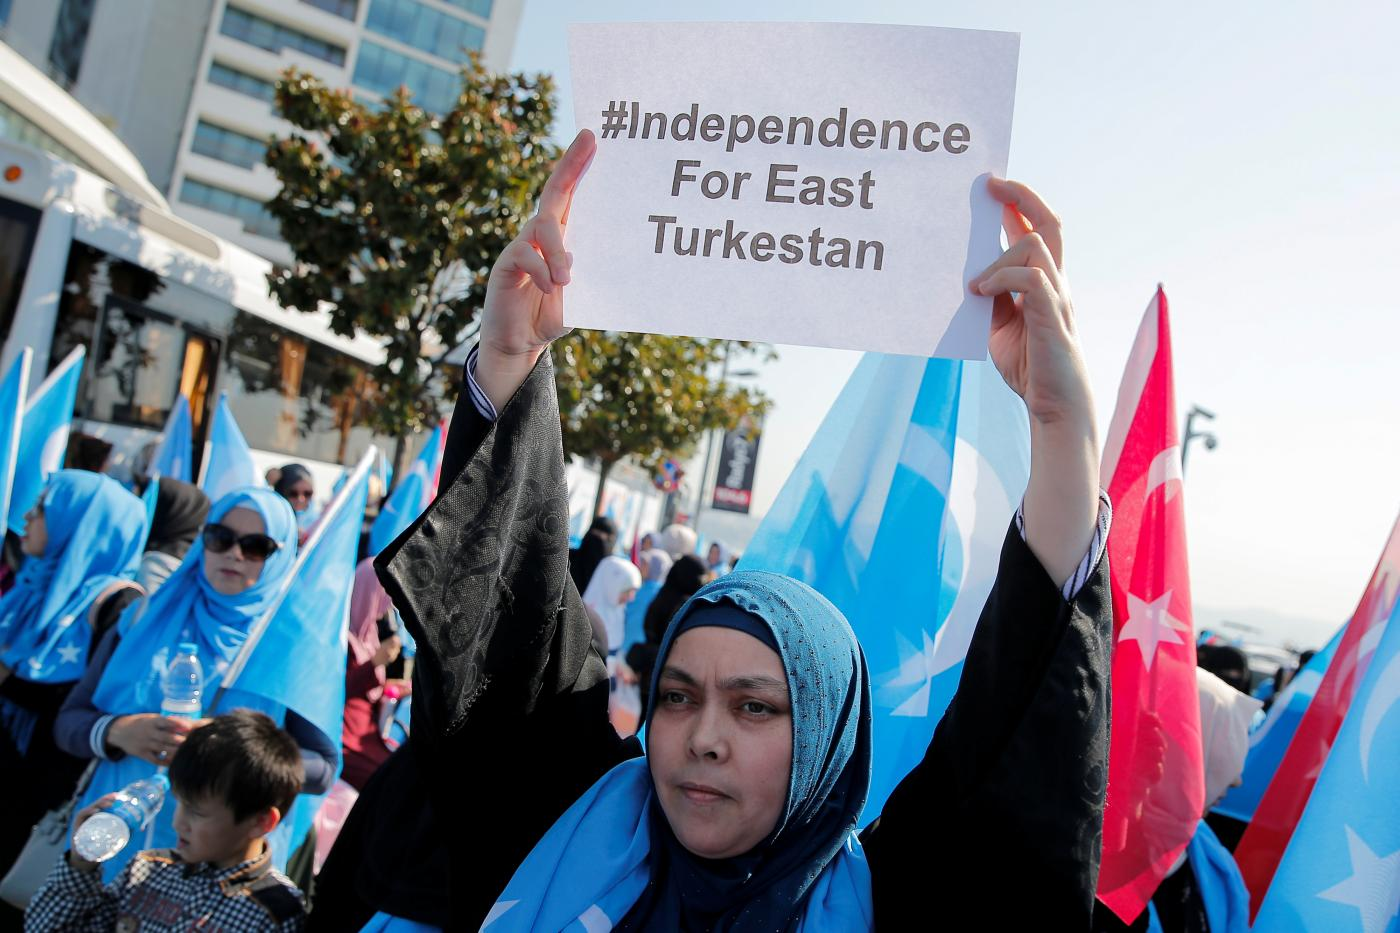 Uighurs have long called Istanbul a home but fear that could end with Turkey's growing relations with China (Reuters)